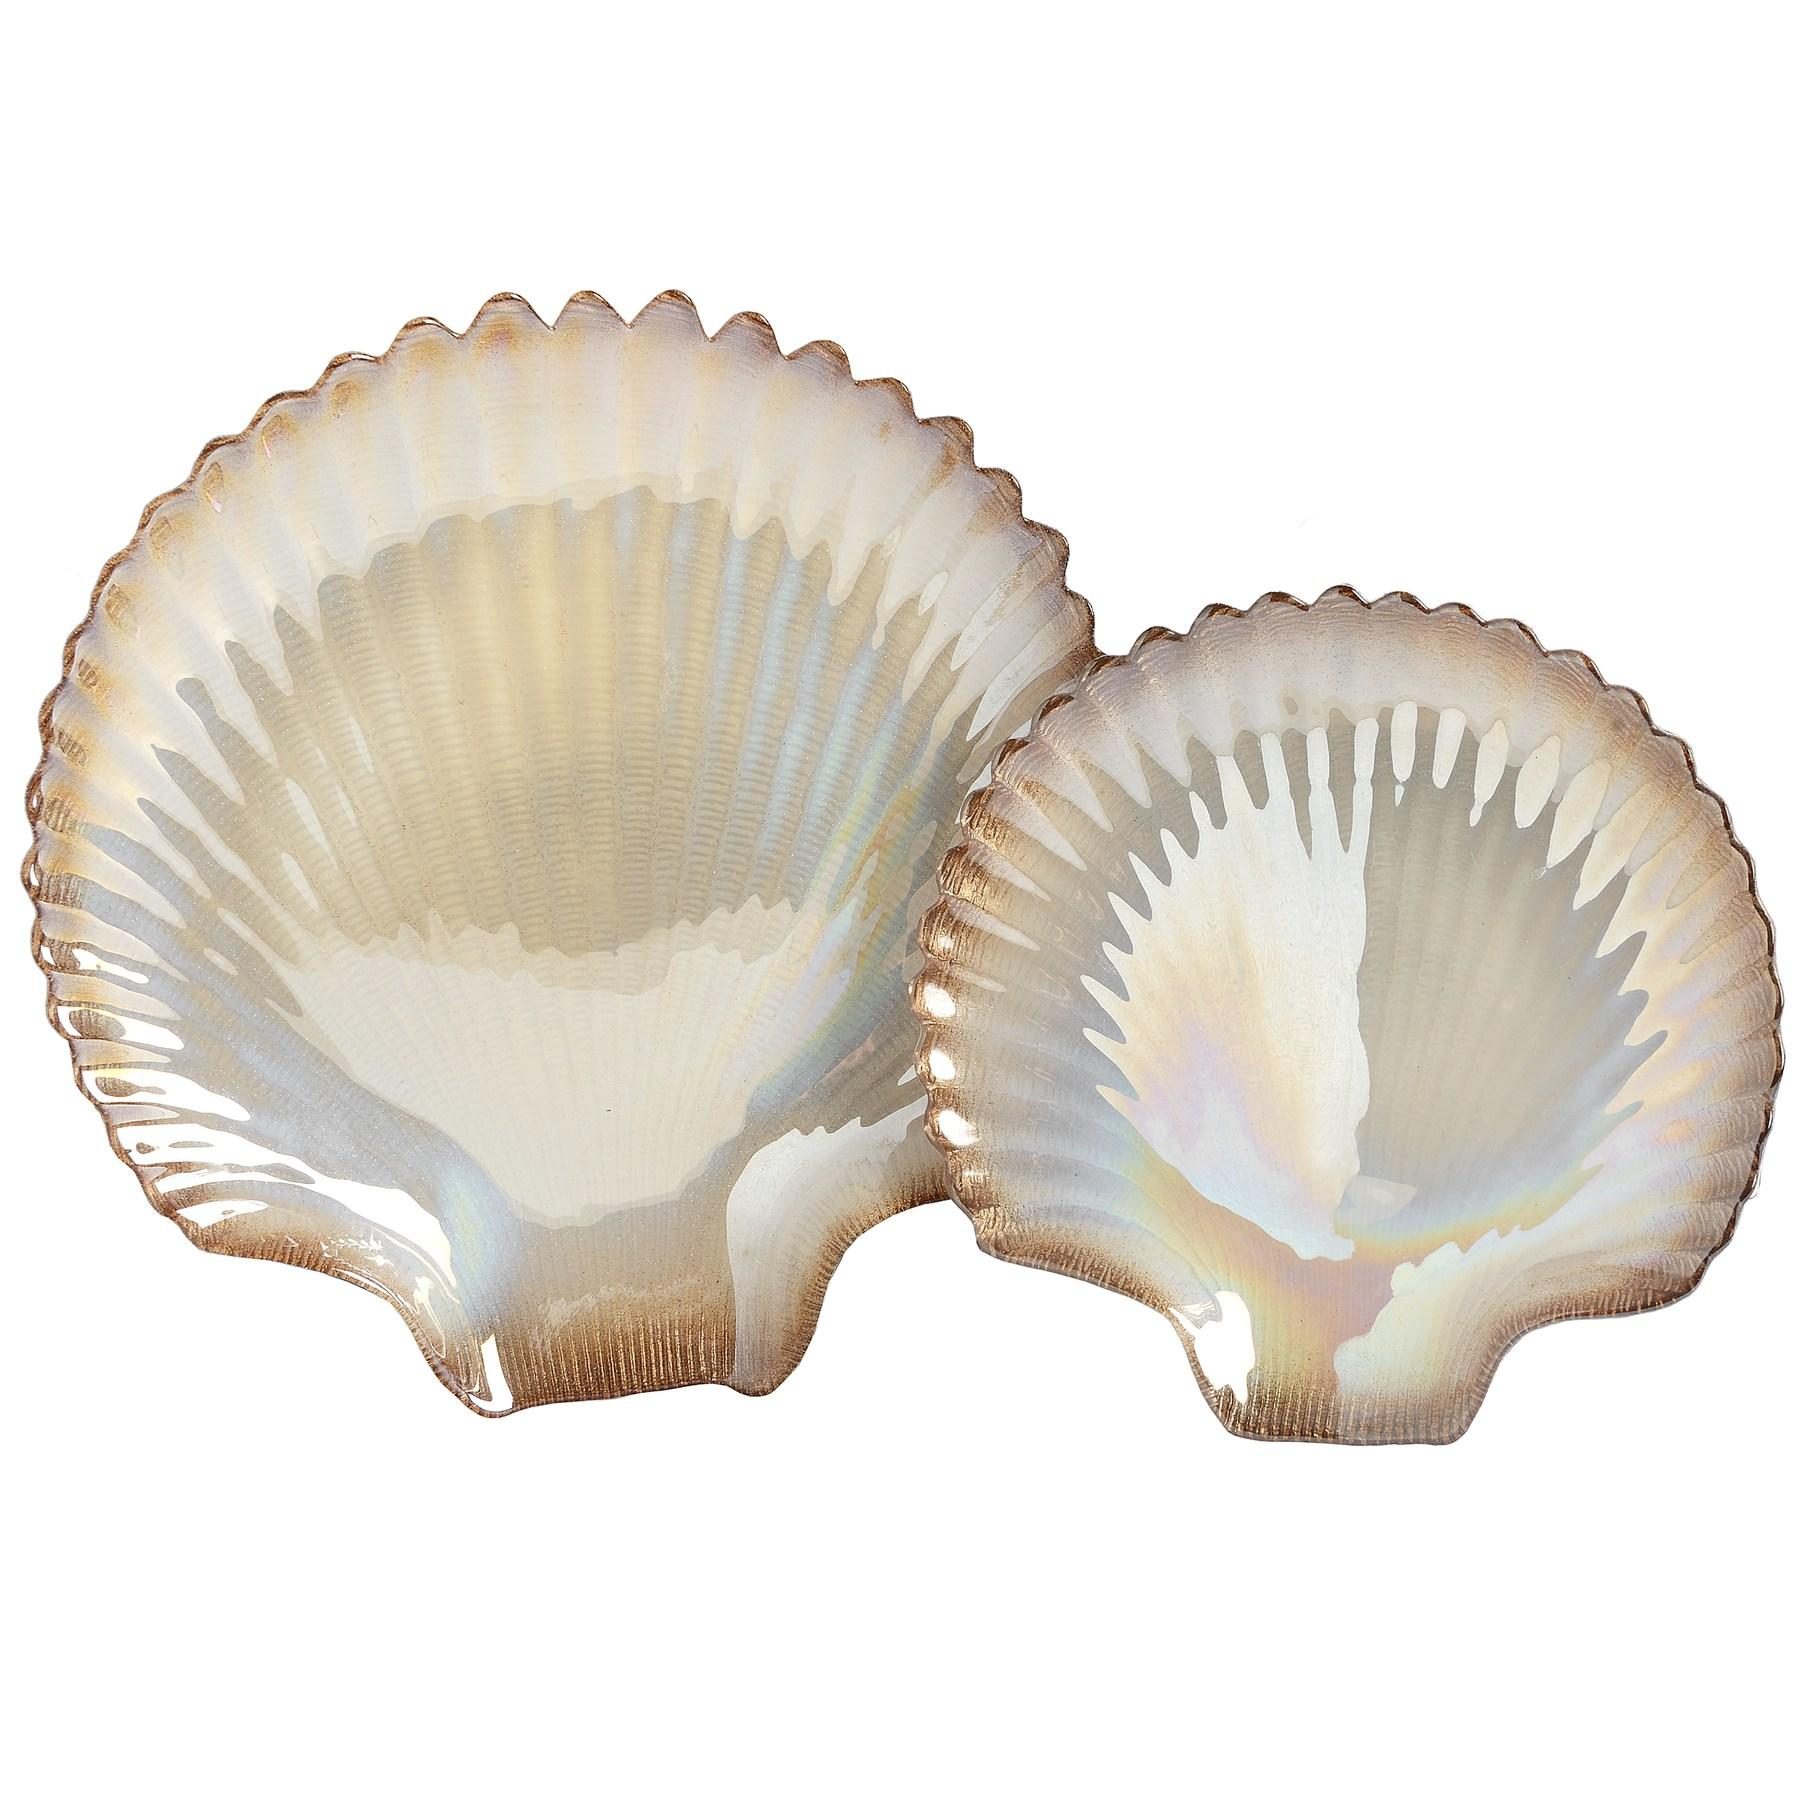 Set of 2 gold and cream clam shell display dishes